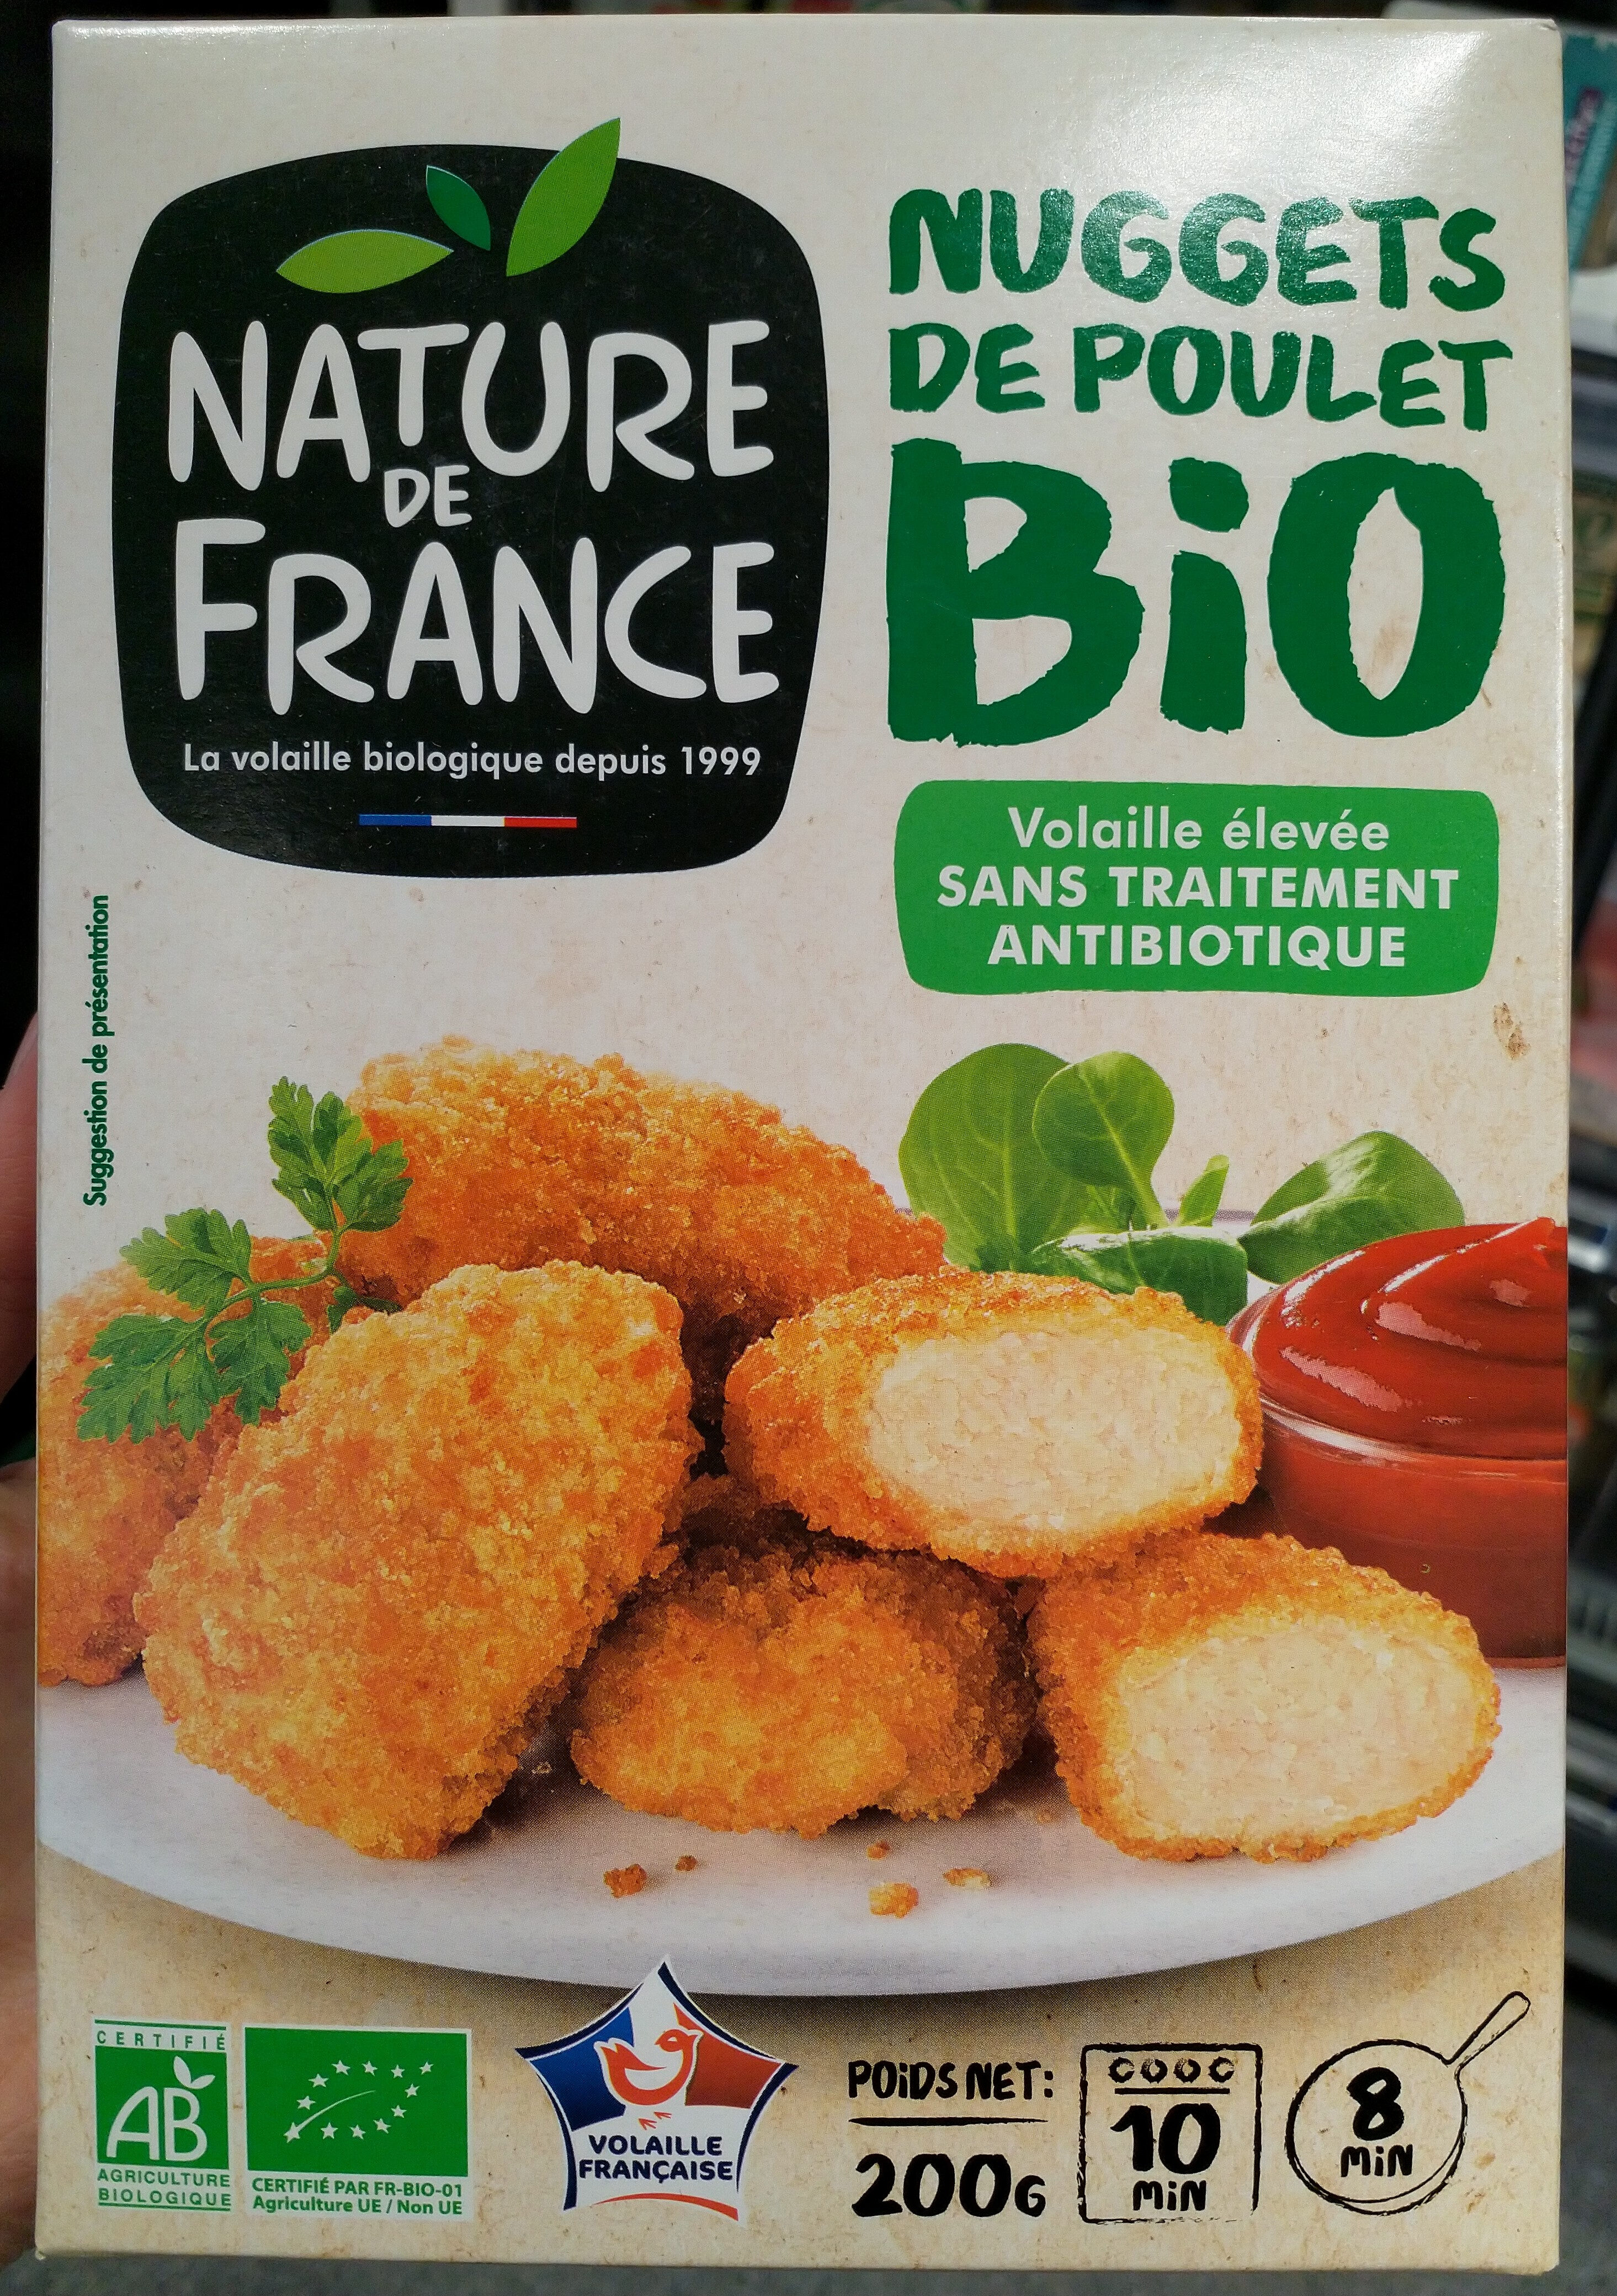 Nuggets au poulet bio - Product - fr